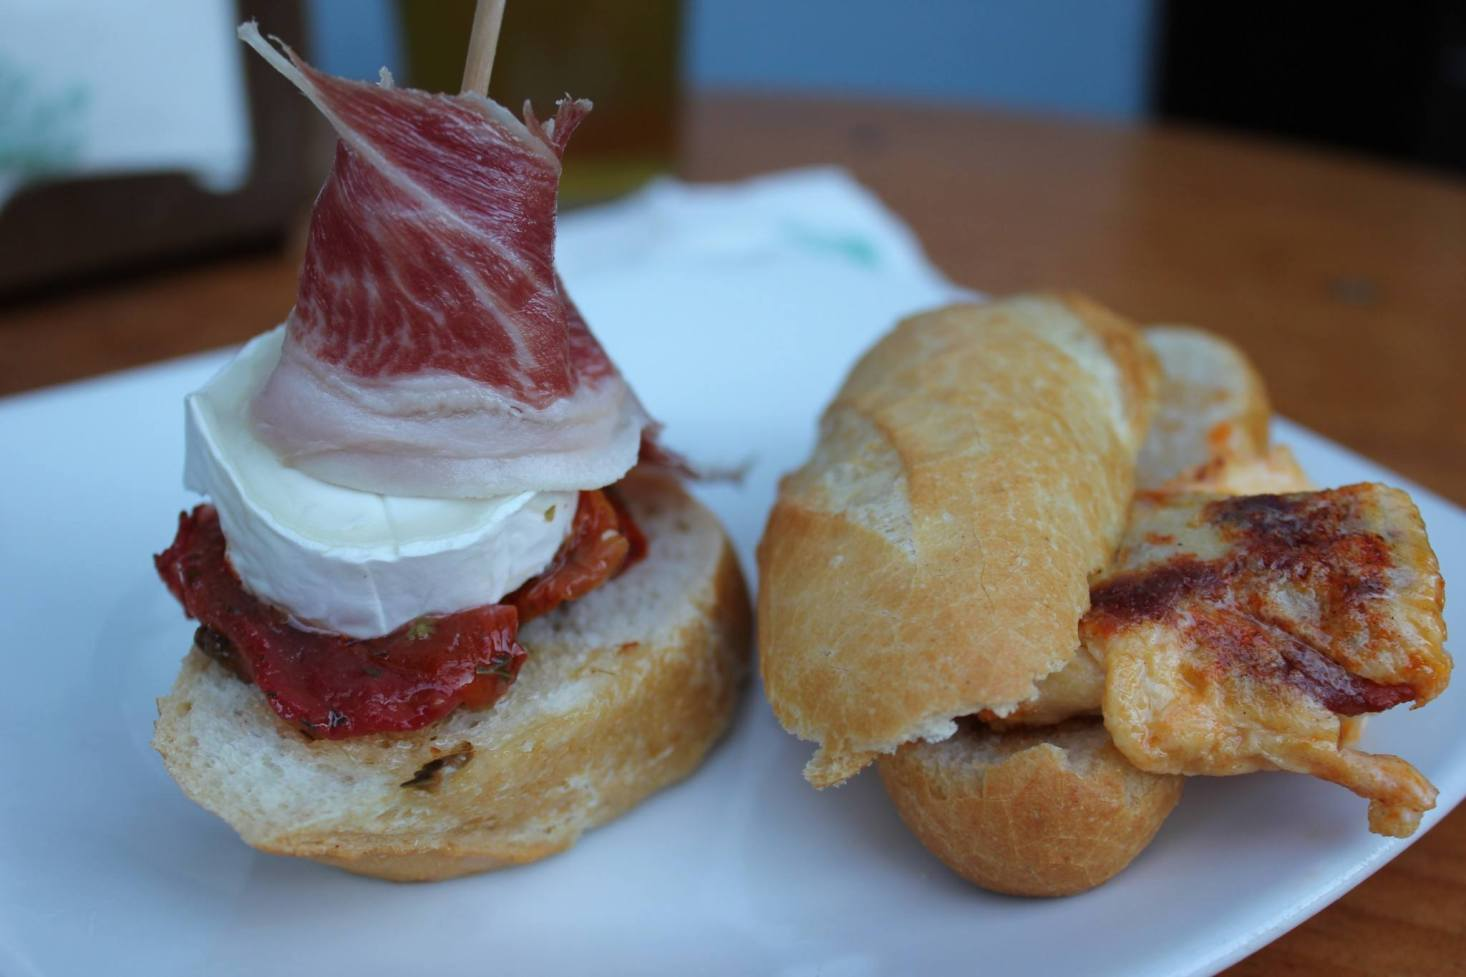 Hand-crafted pintxos in Hondarribia, Spain